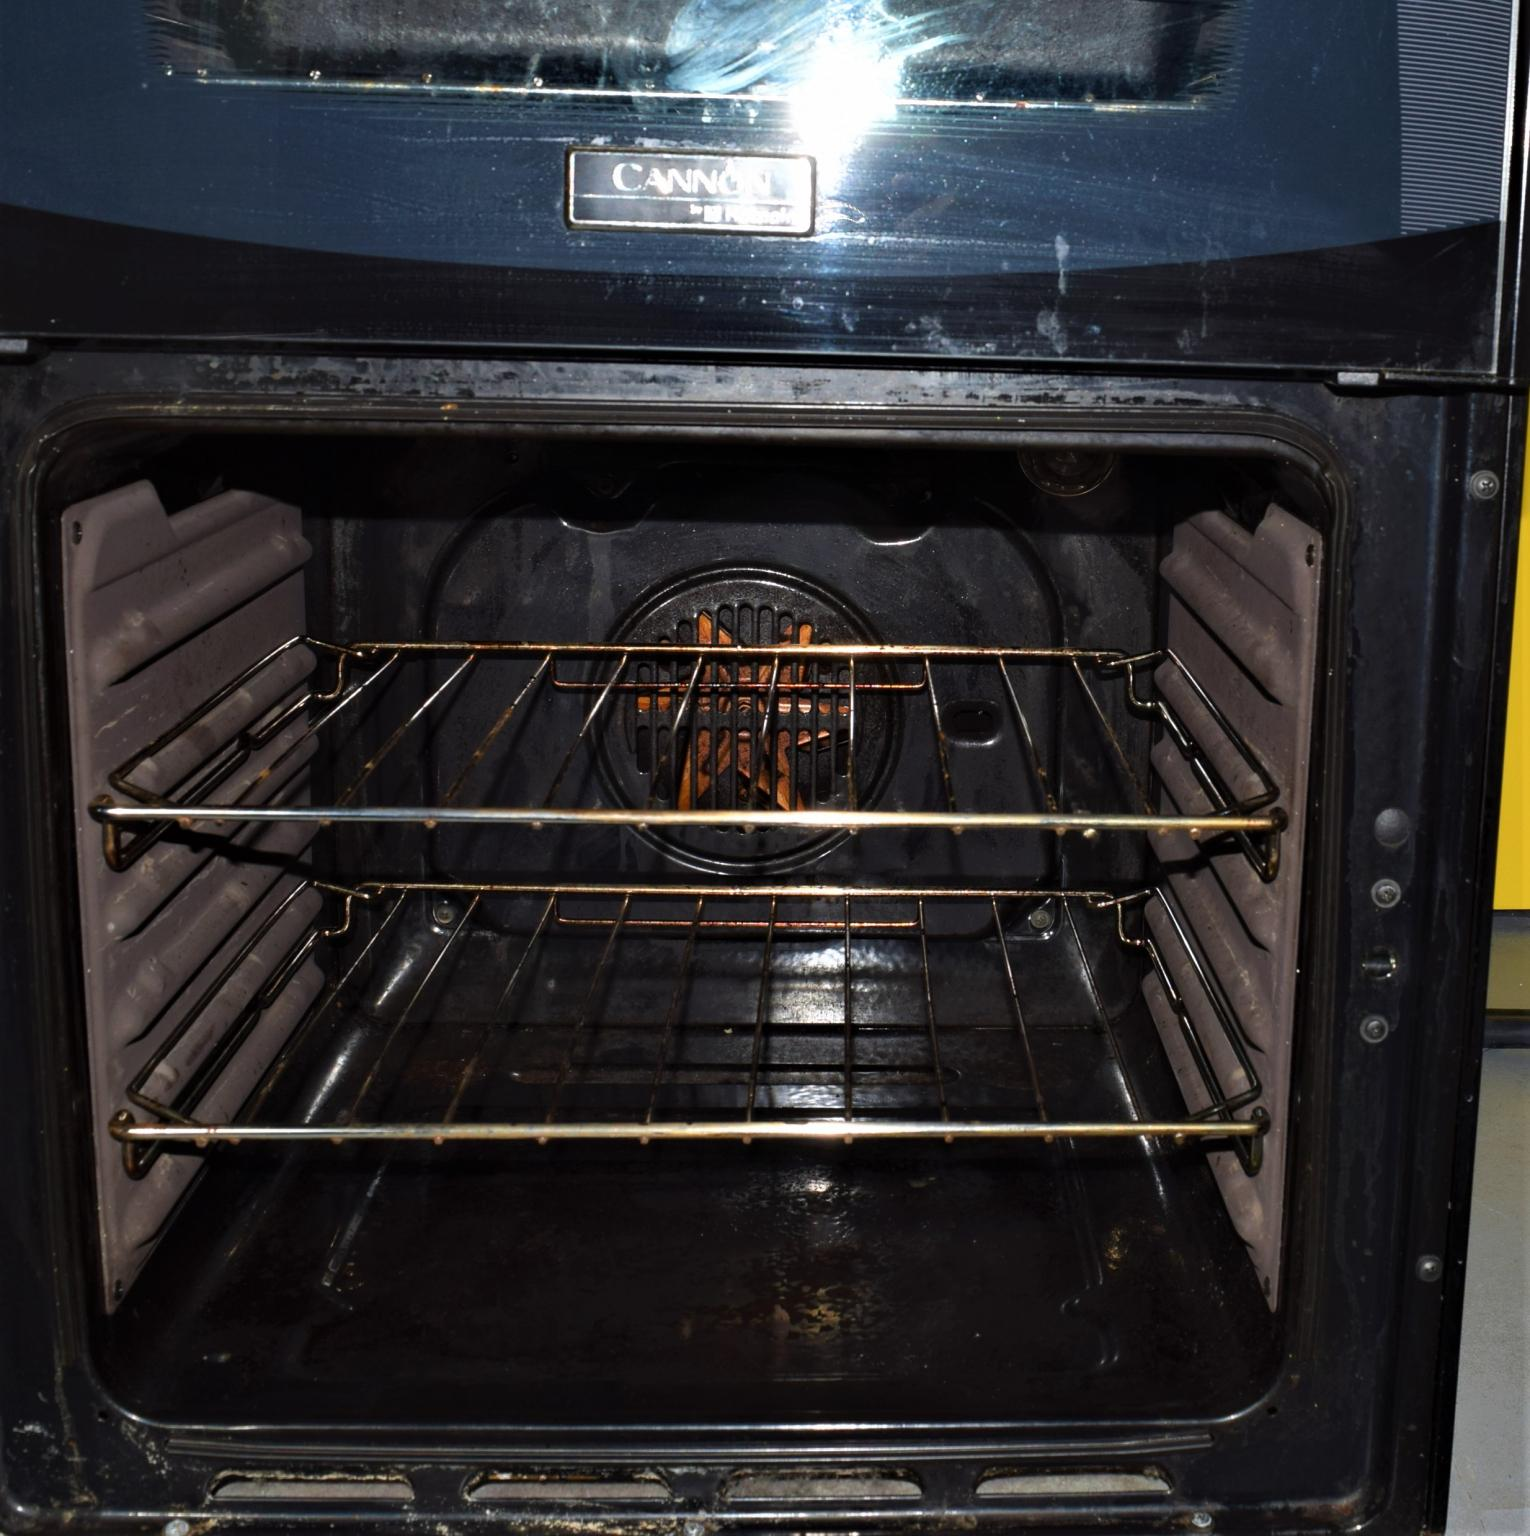 Cannon Ch60dhkf Dual Fuel Cooker 60cm In Tw8 Hounslow For 163 145 00 For Sale Shpock